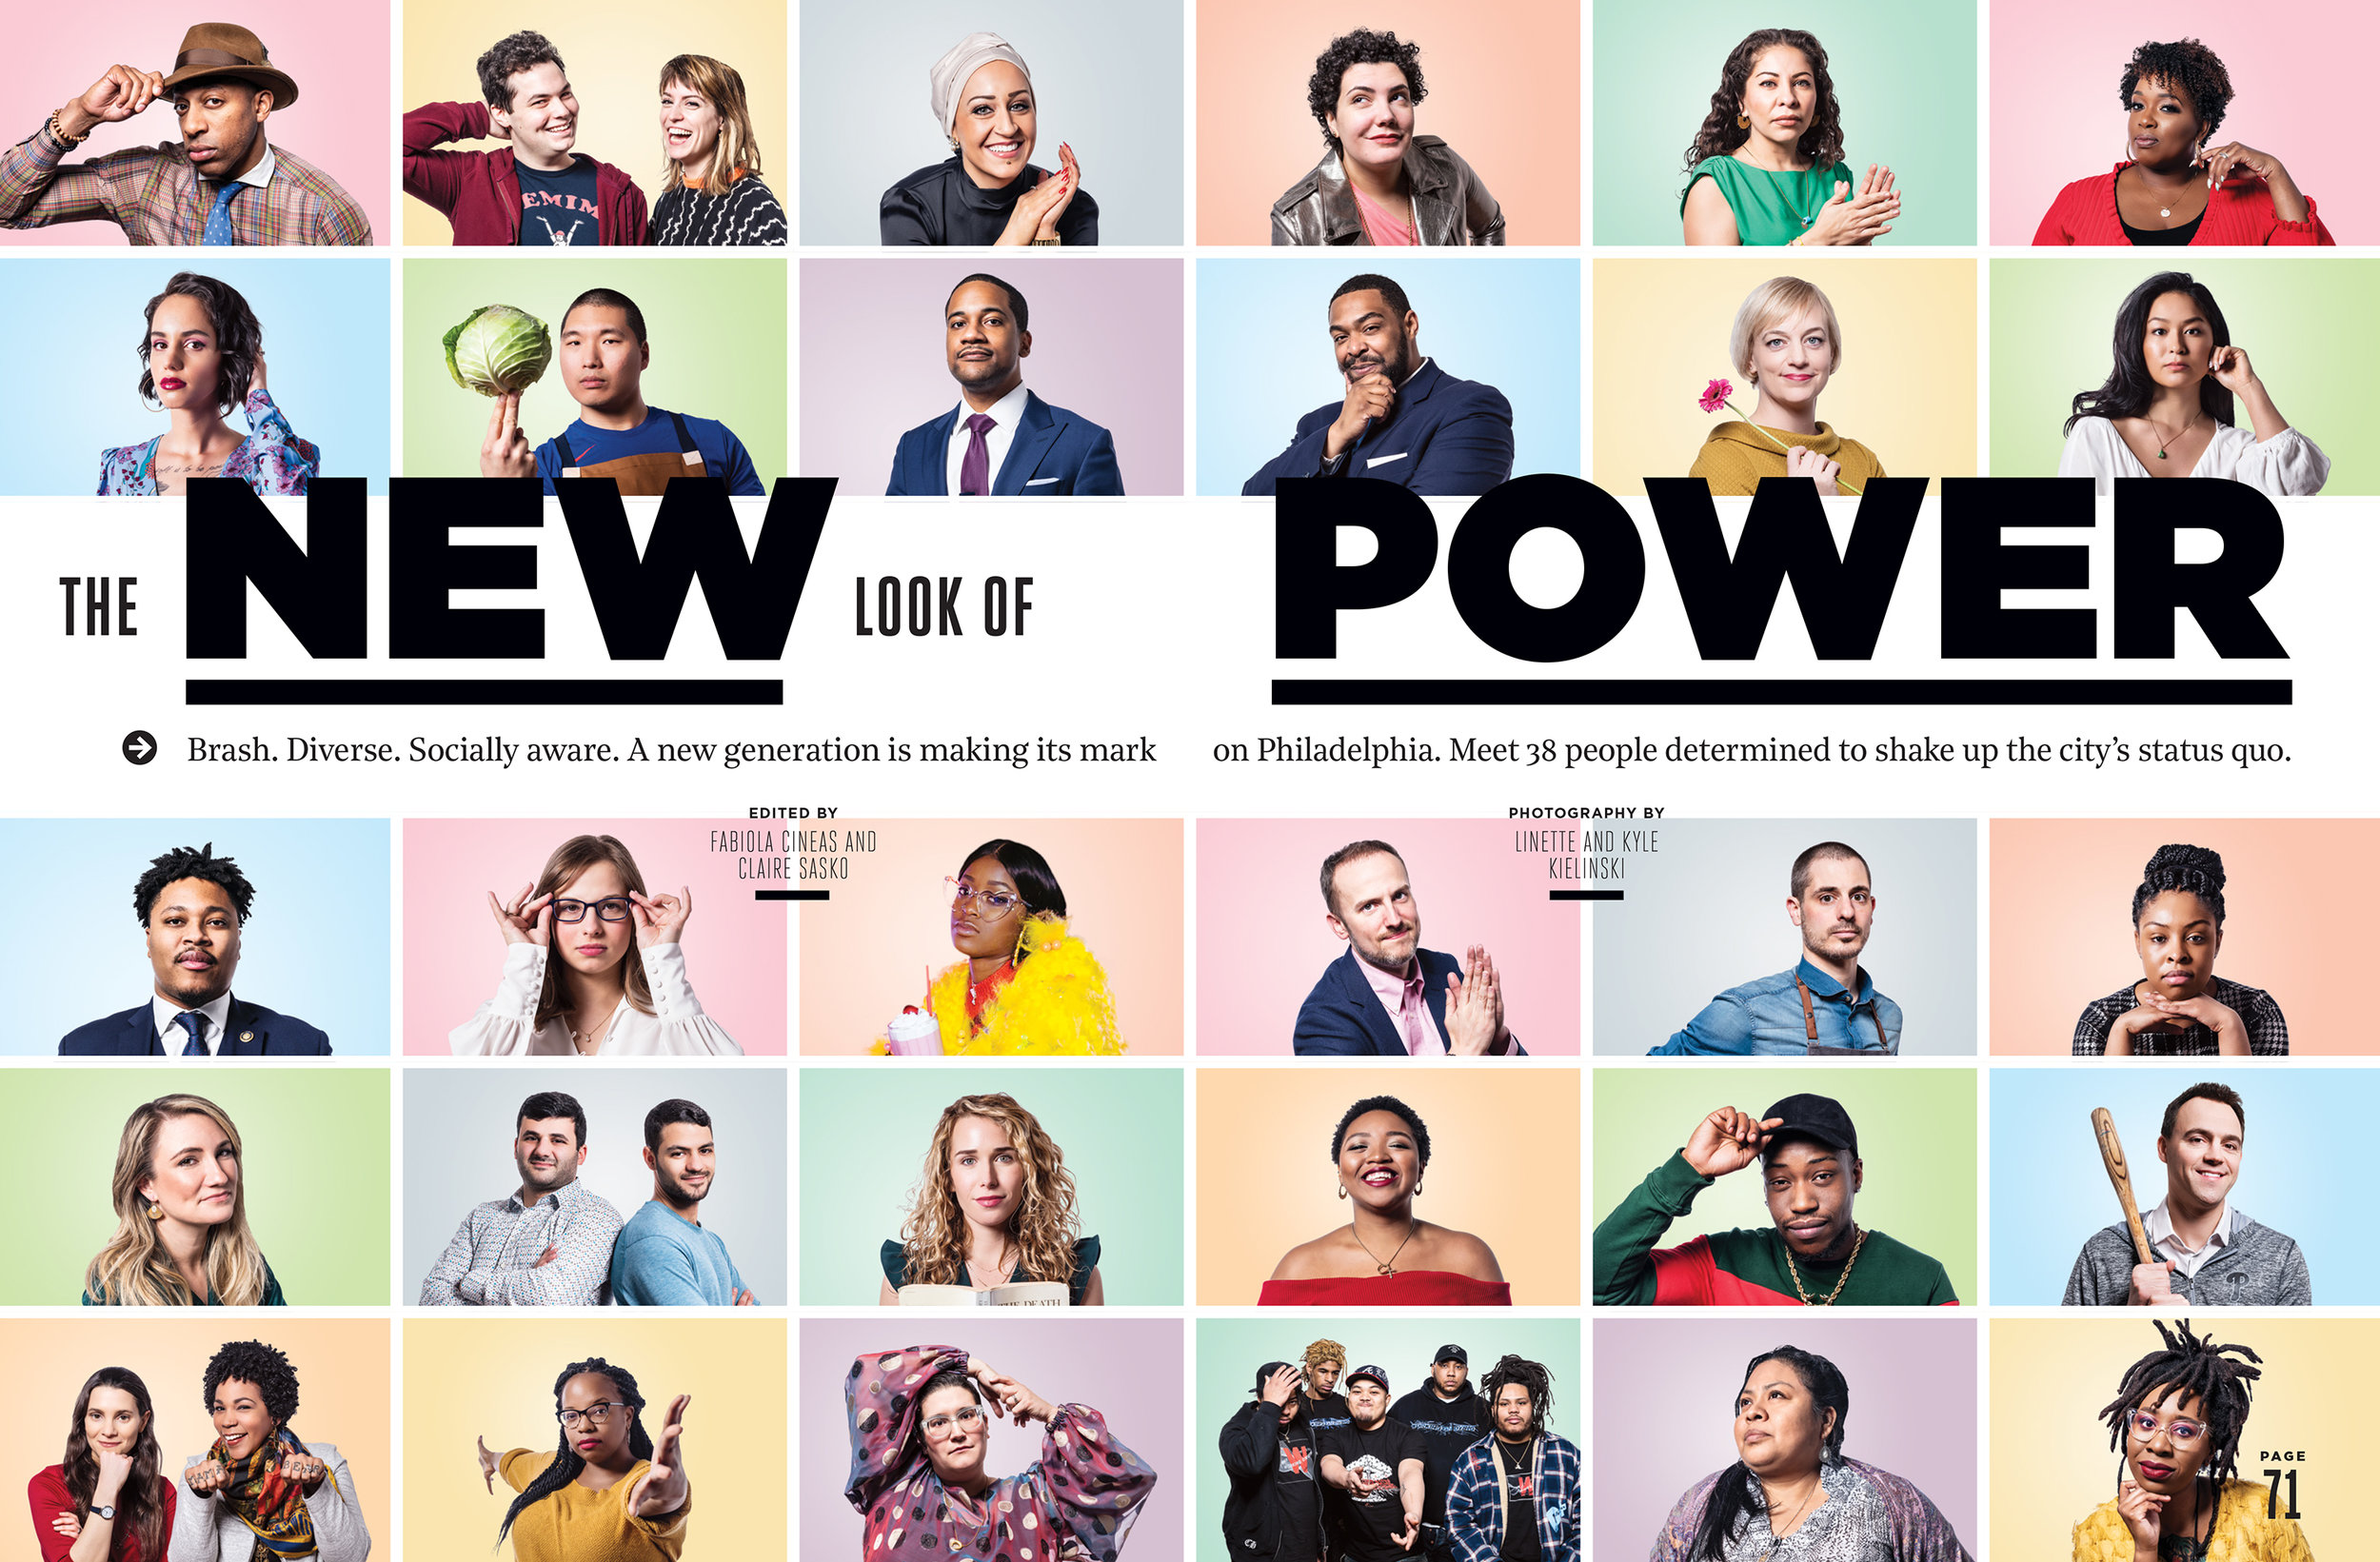 "We're excited to finally share some of our work that's featured in the April issue of  Philadelphia Magazine ! "" The New Look of Power  - Brash. Diverse. Socially aware. A new generation is making its mark on Philadelphia. Meet 38 people determined to shake up the city's status quo."""